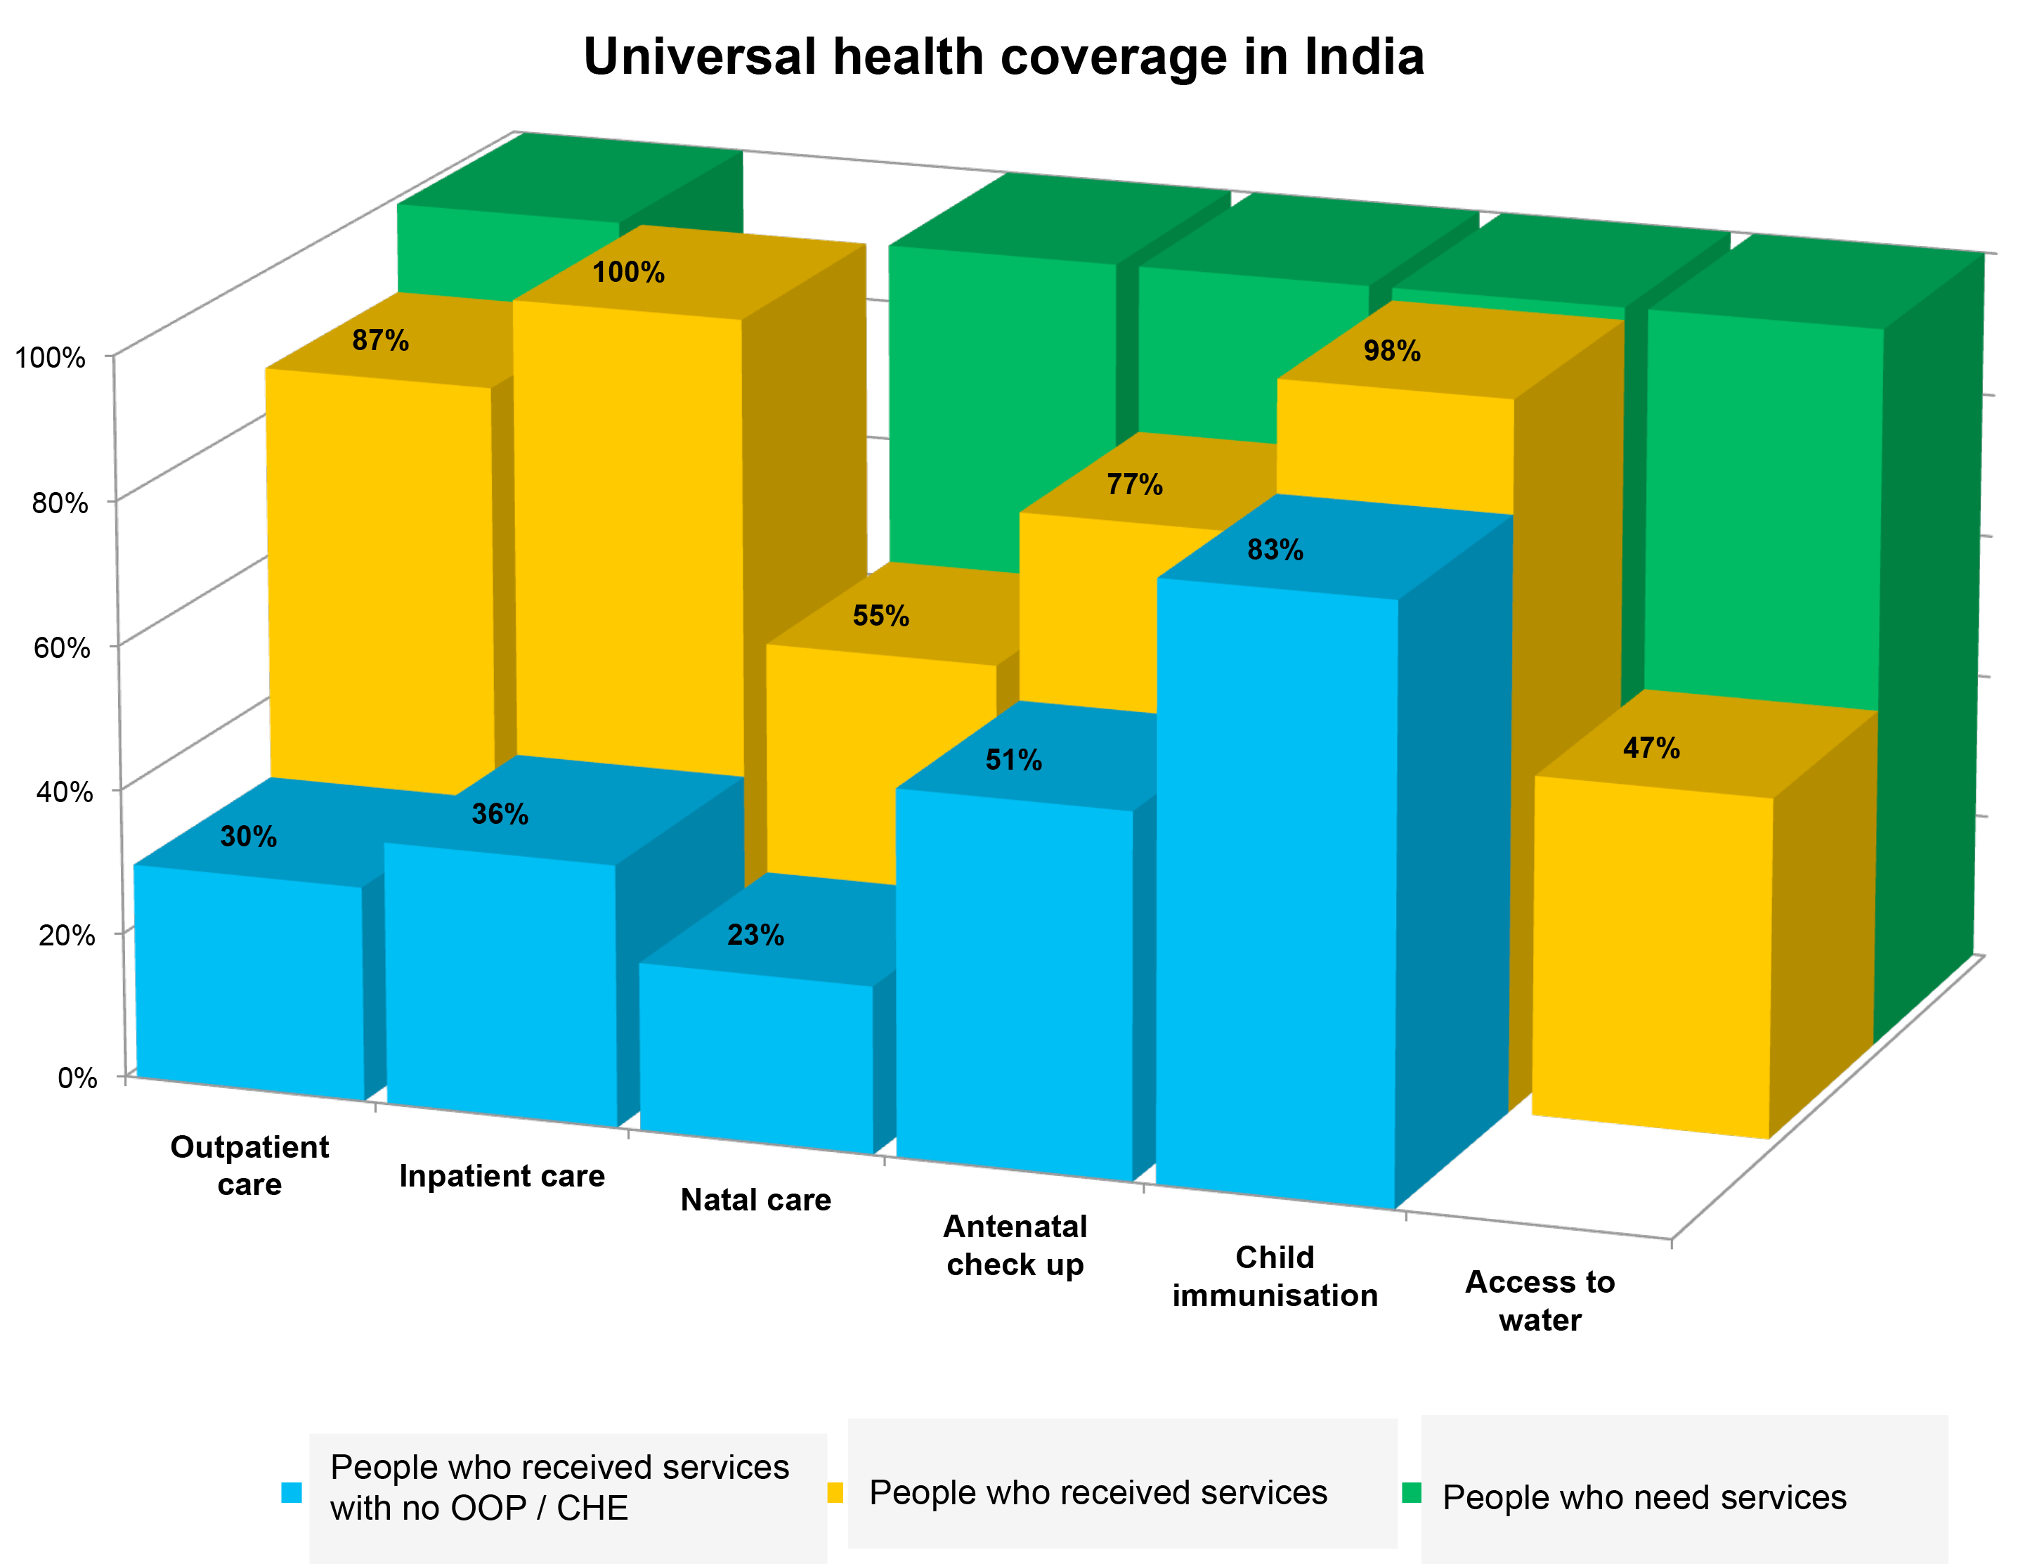 Universal health coverage for selected health services in India in 2004.